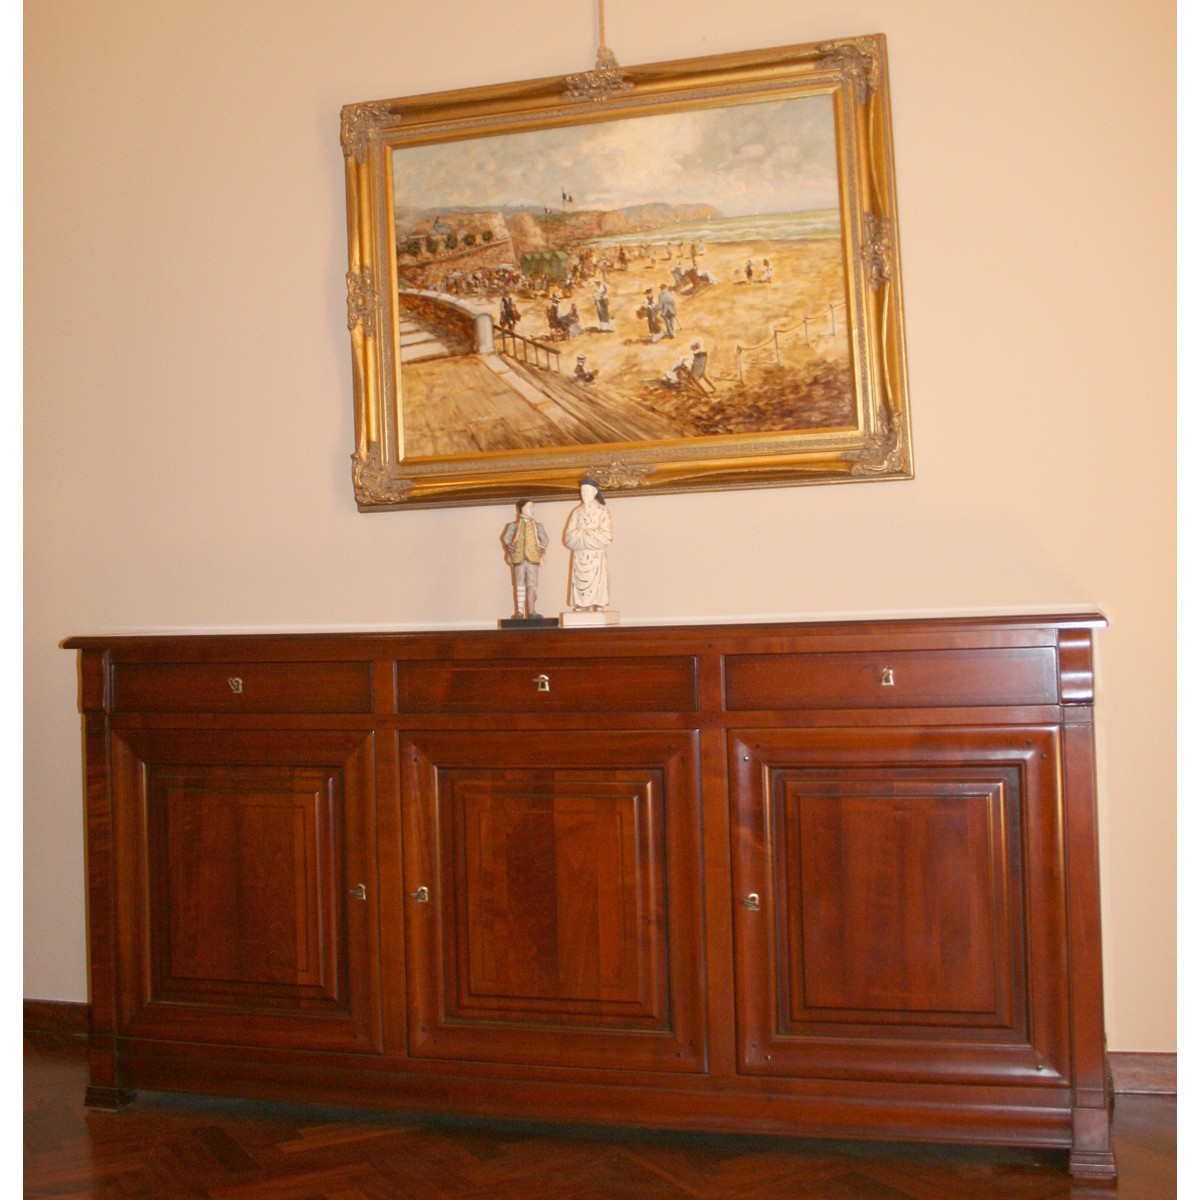 Grande arredo va 3 sideboard outlet for Sideboard 2 m lang